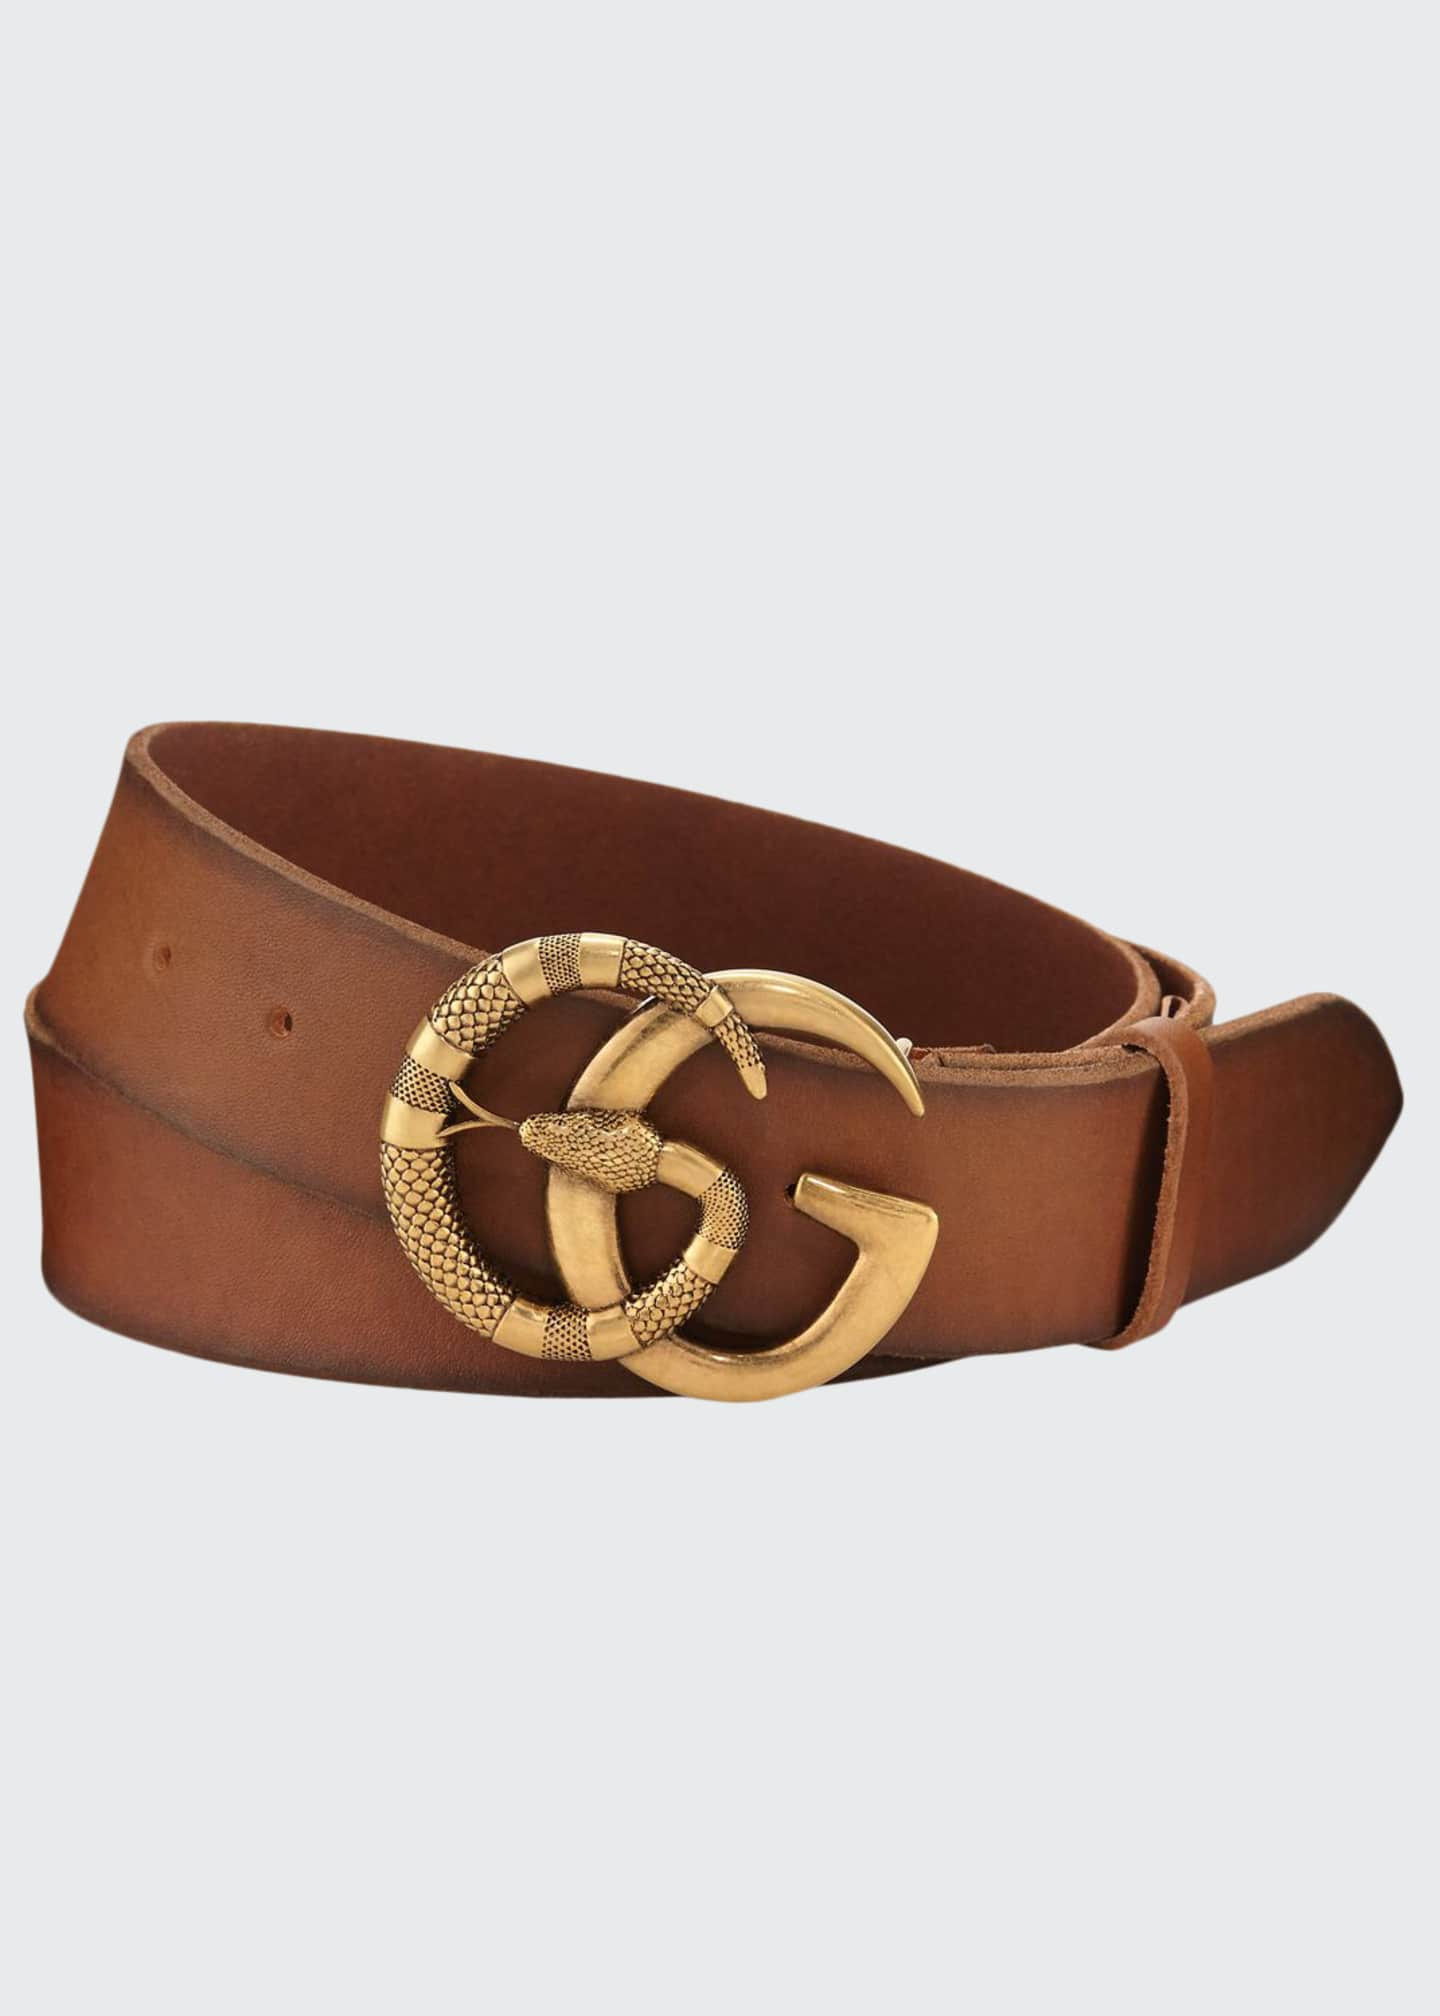 Gucci Men's Cuoio Toscano Snake GG Belt